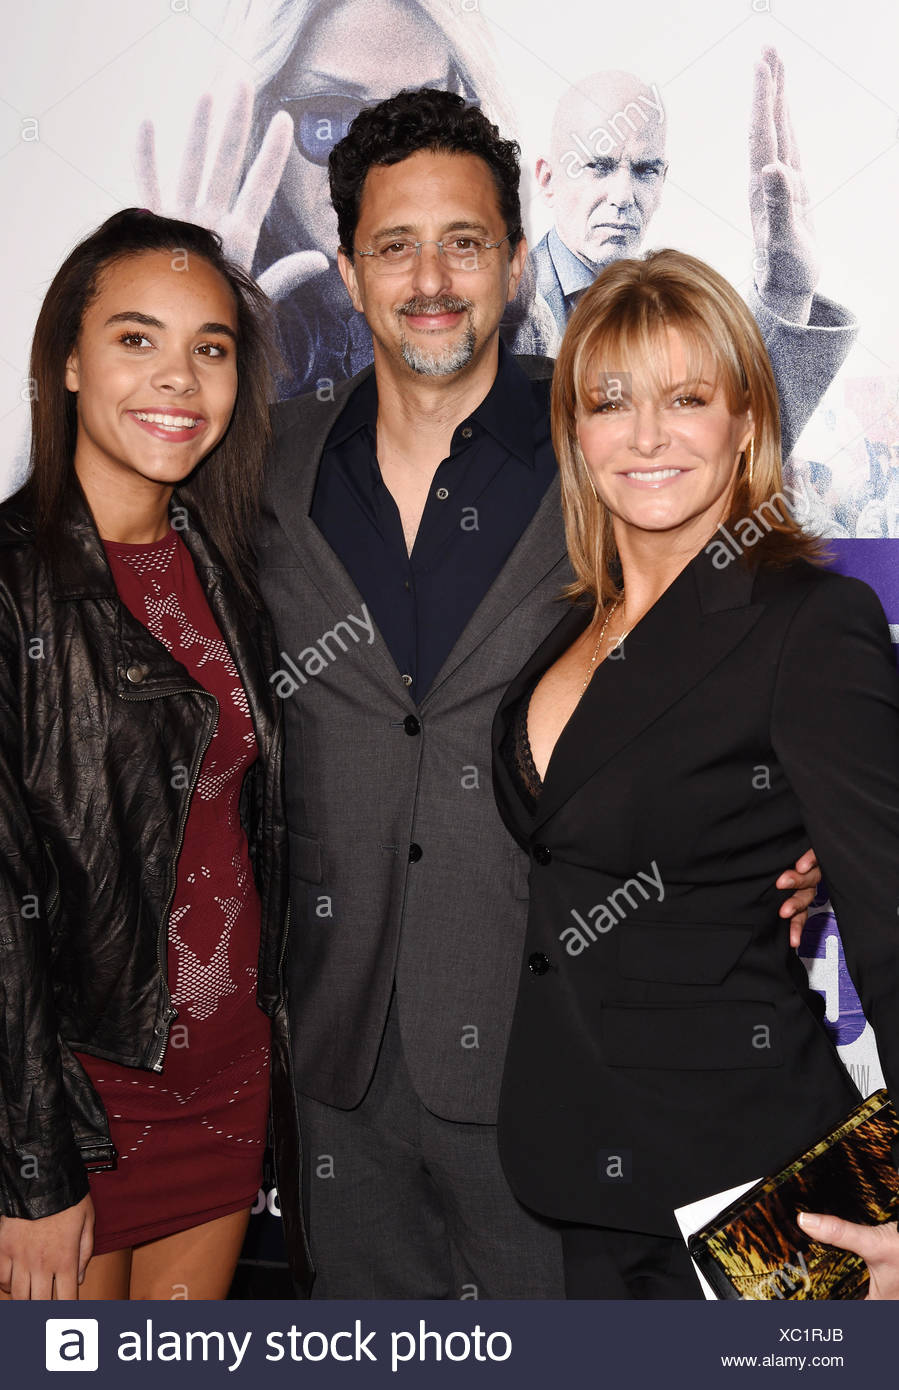 Producer Grant Heslov (C) and guests arrive at the premiere of Warner Bros. Pictures' 'Our Brand Is Crisis' at TCL Chinese Theatre on October 26, 2015 in Hollywood, California., Additional-Rights-Clearances-NA - Stock Image